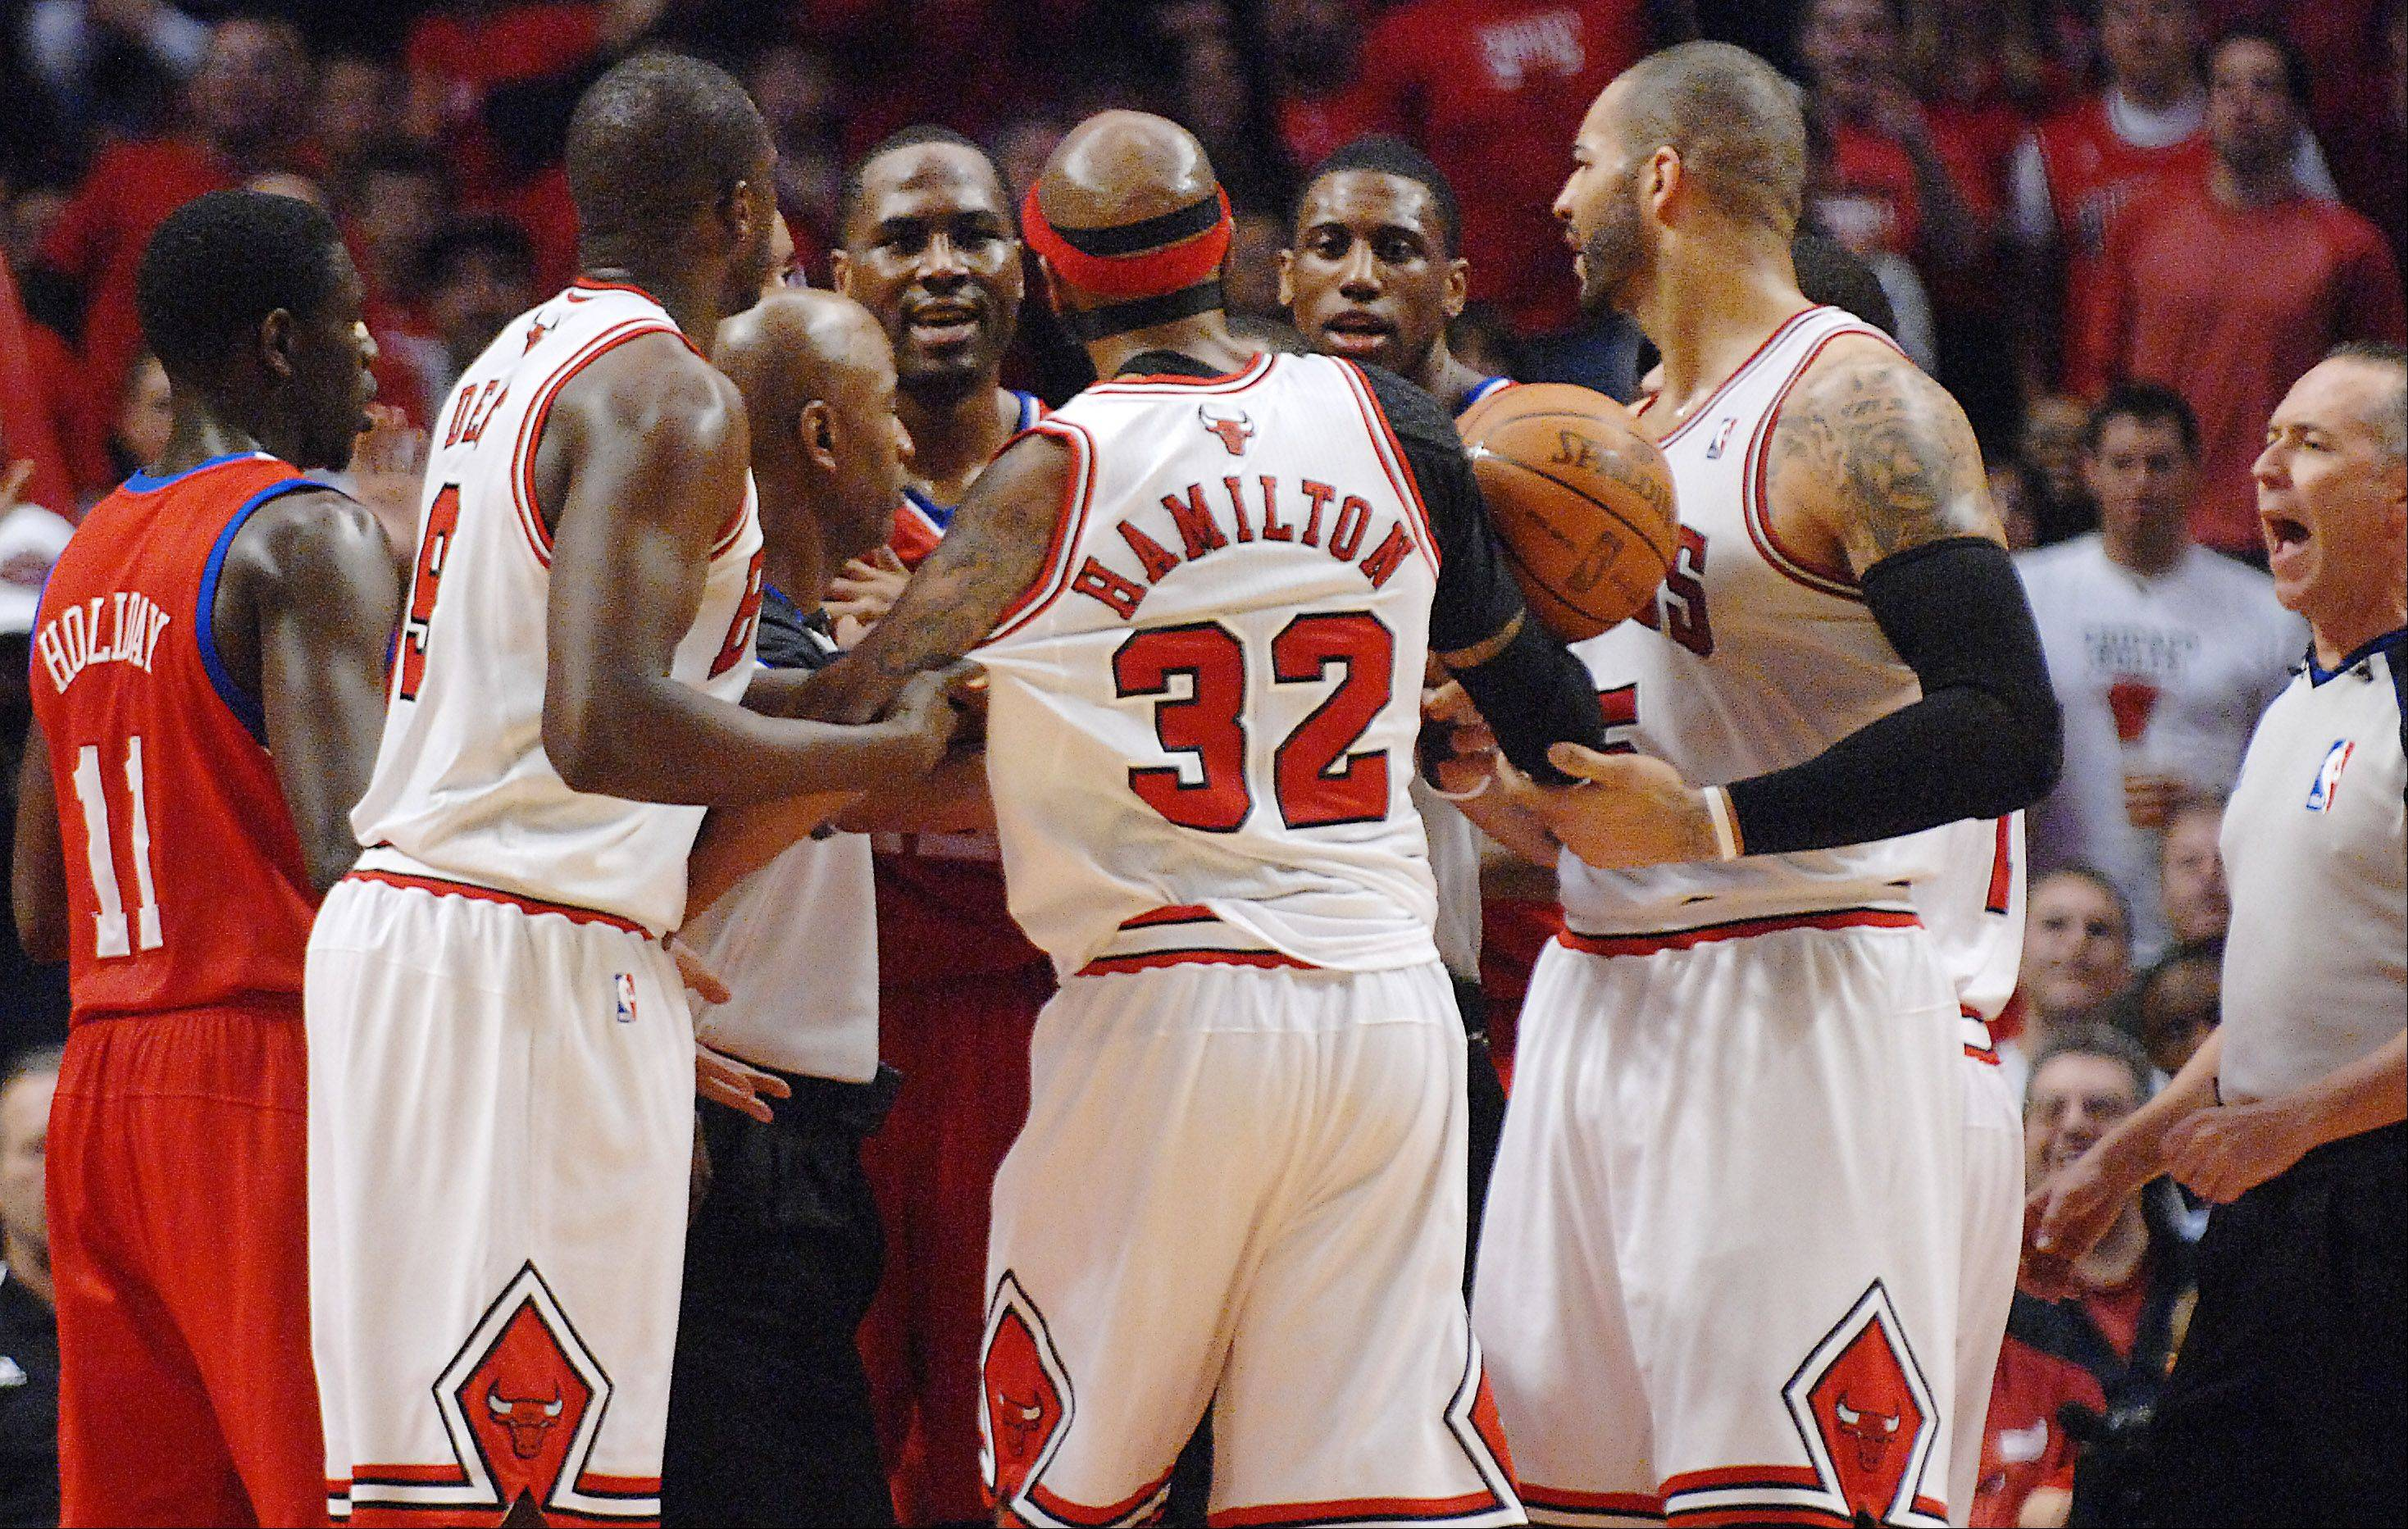 A scuffle occurs Saturday in the first game of the first round of the Eastern Conference Playoffs at the United Center in Chicago. Three technical fouls were issued, two of them on the Bulls.